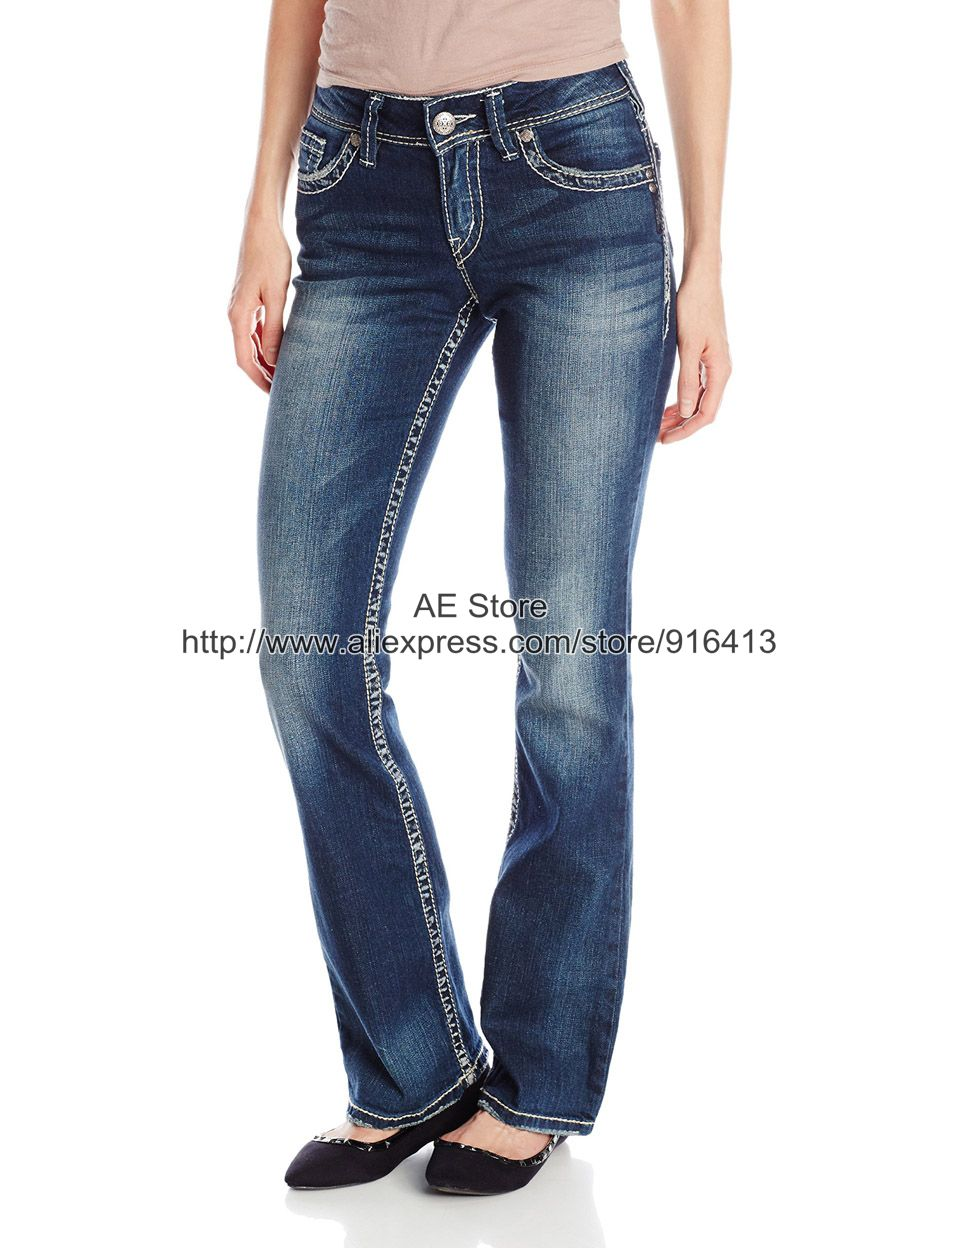 Compare Prices on Silver Jeans Juniors- Online Shopping/Buy Low ...